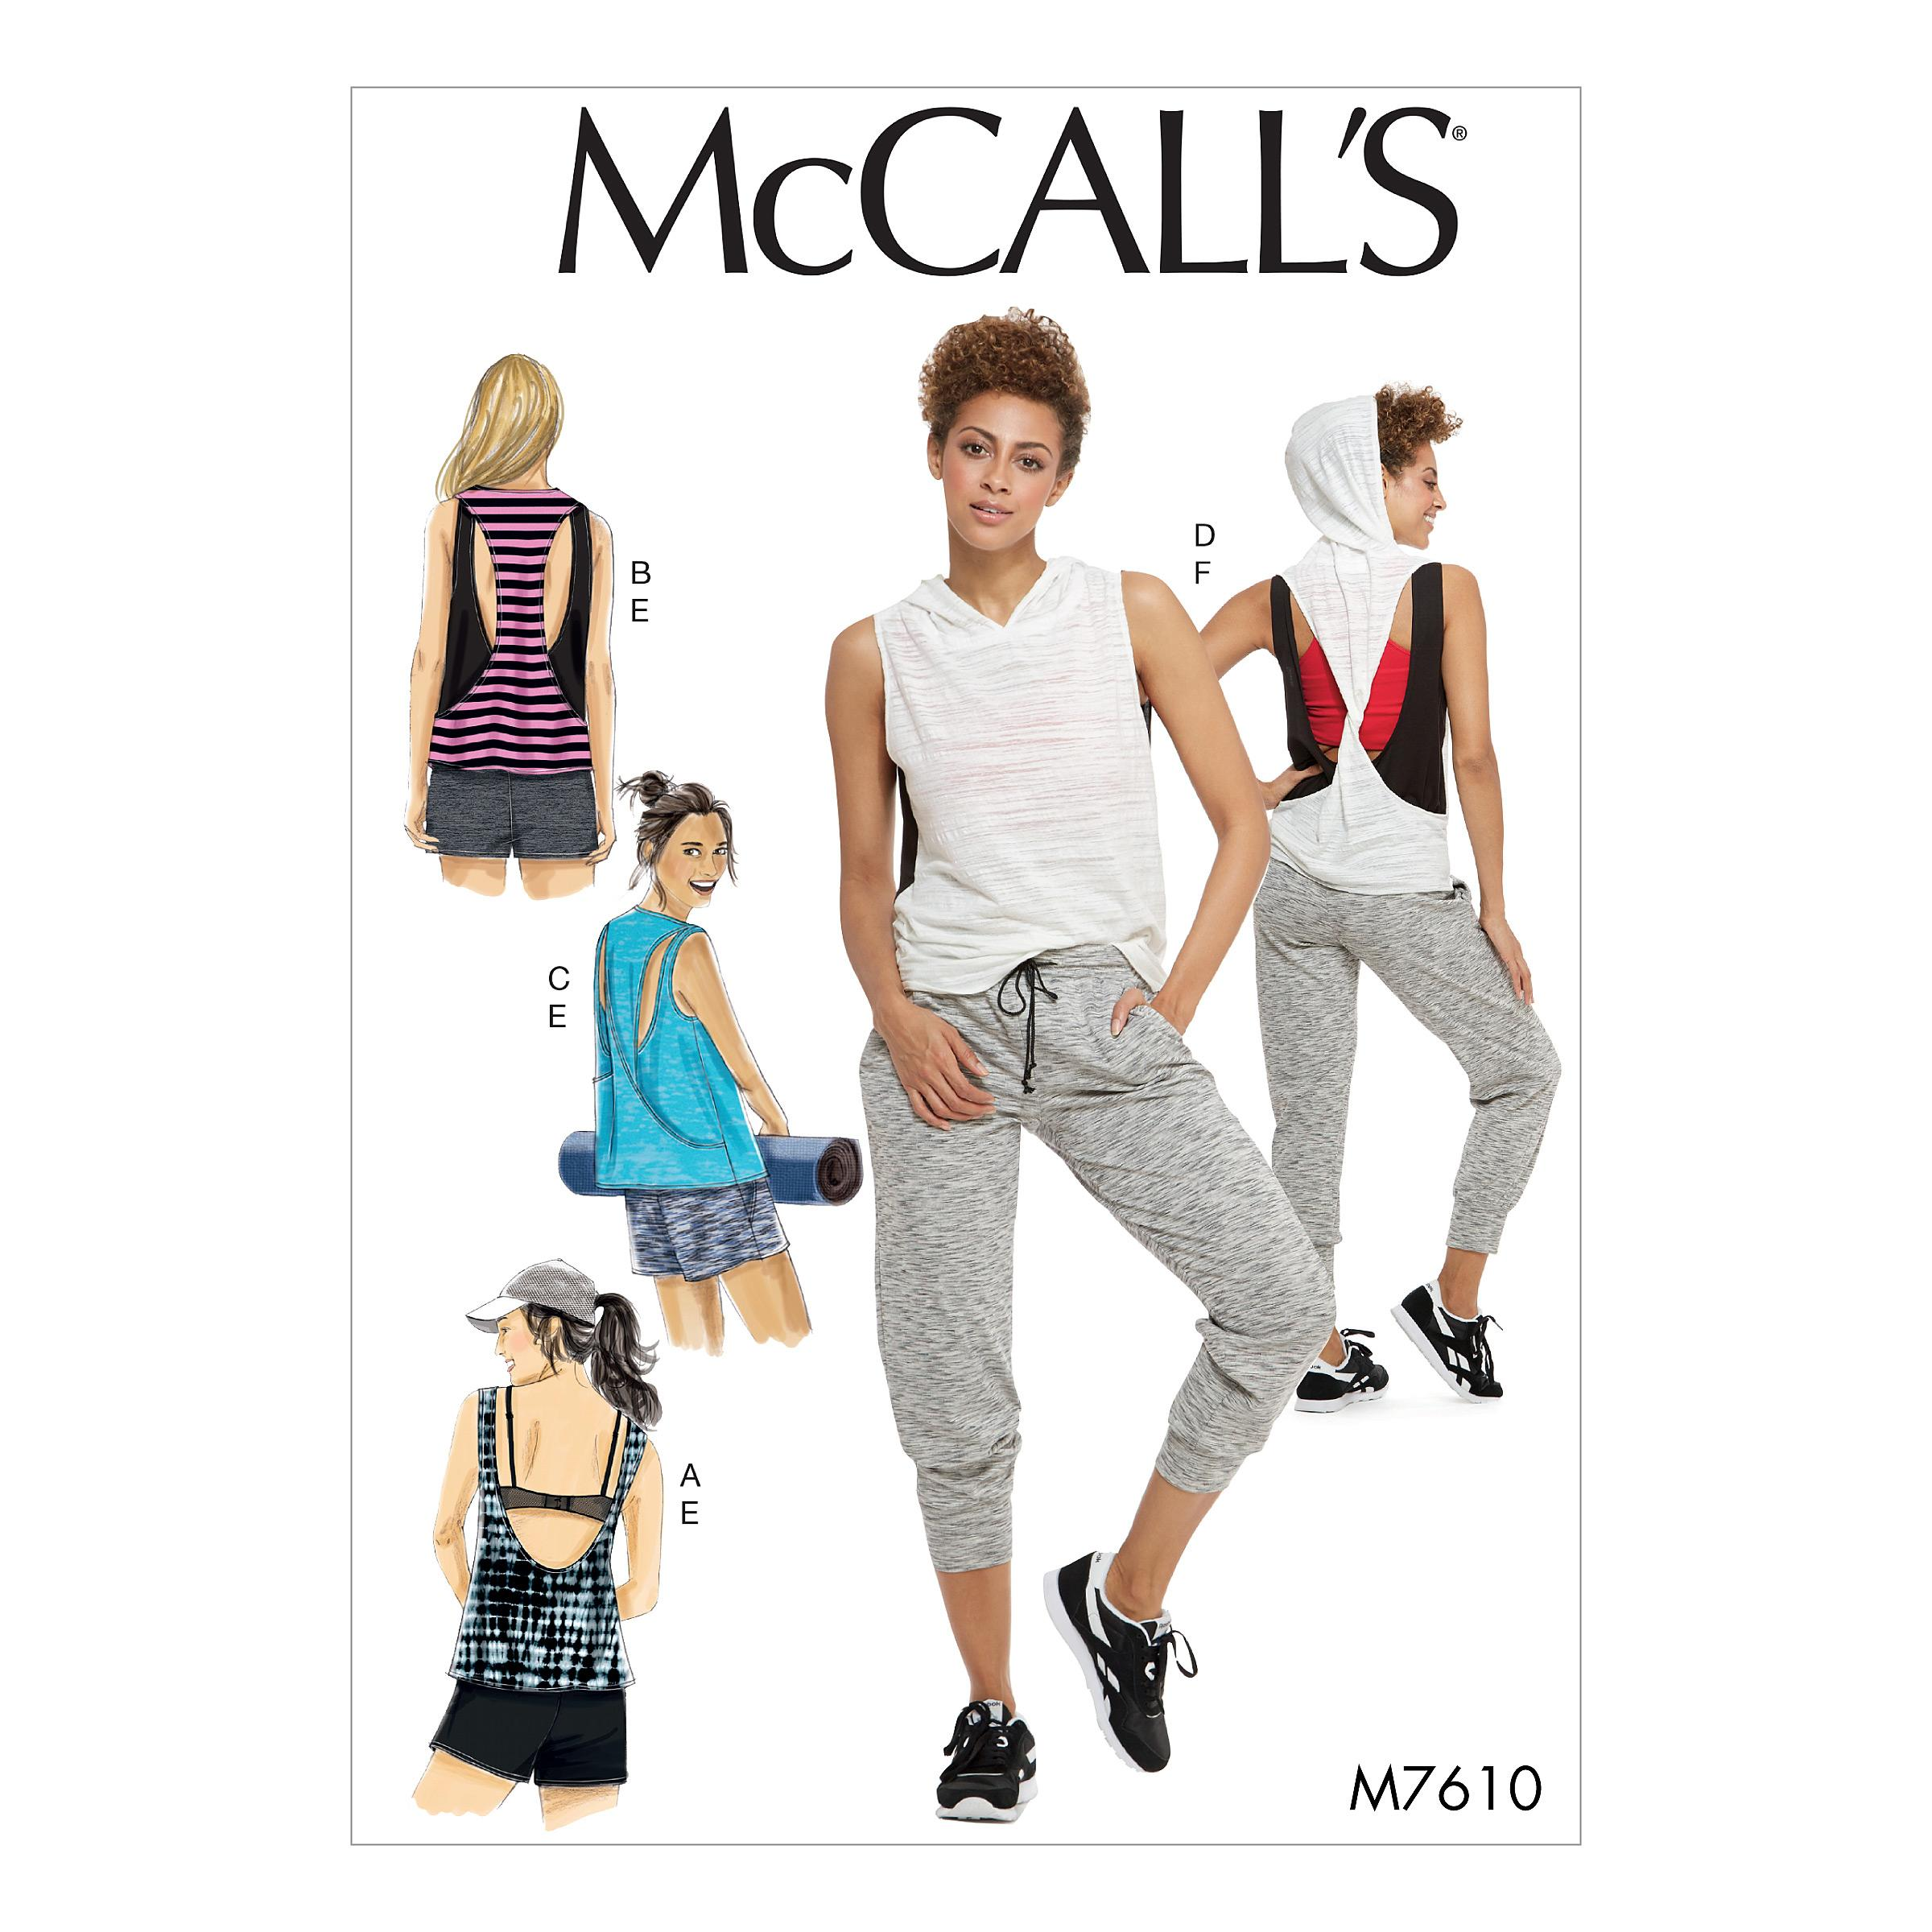 McCalls M7610 Misses Pants, Jumpsuits & Shorts, Misses Tops